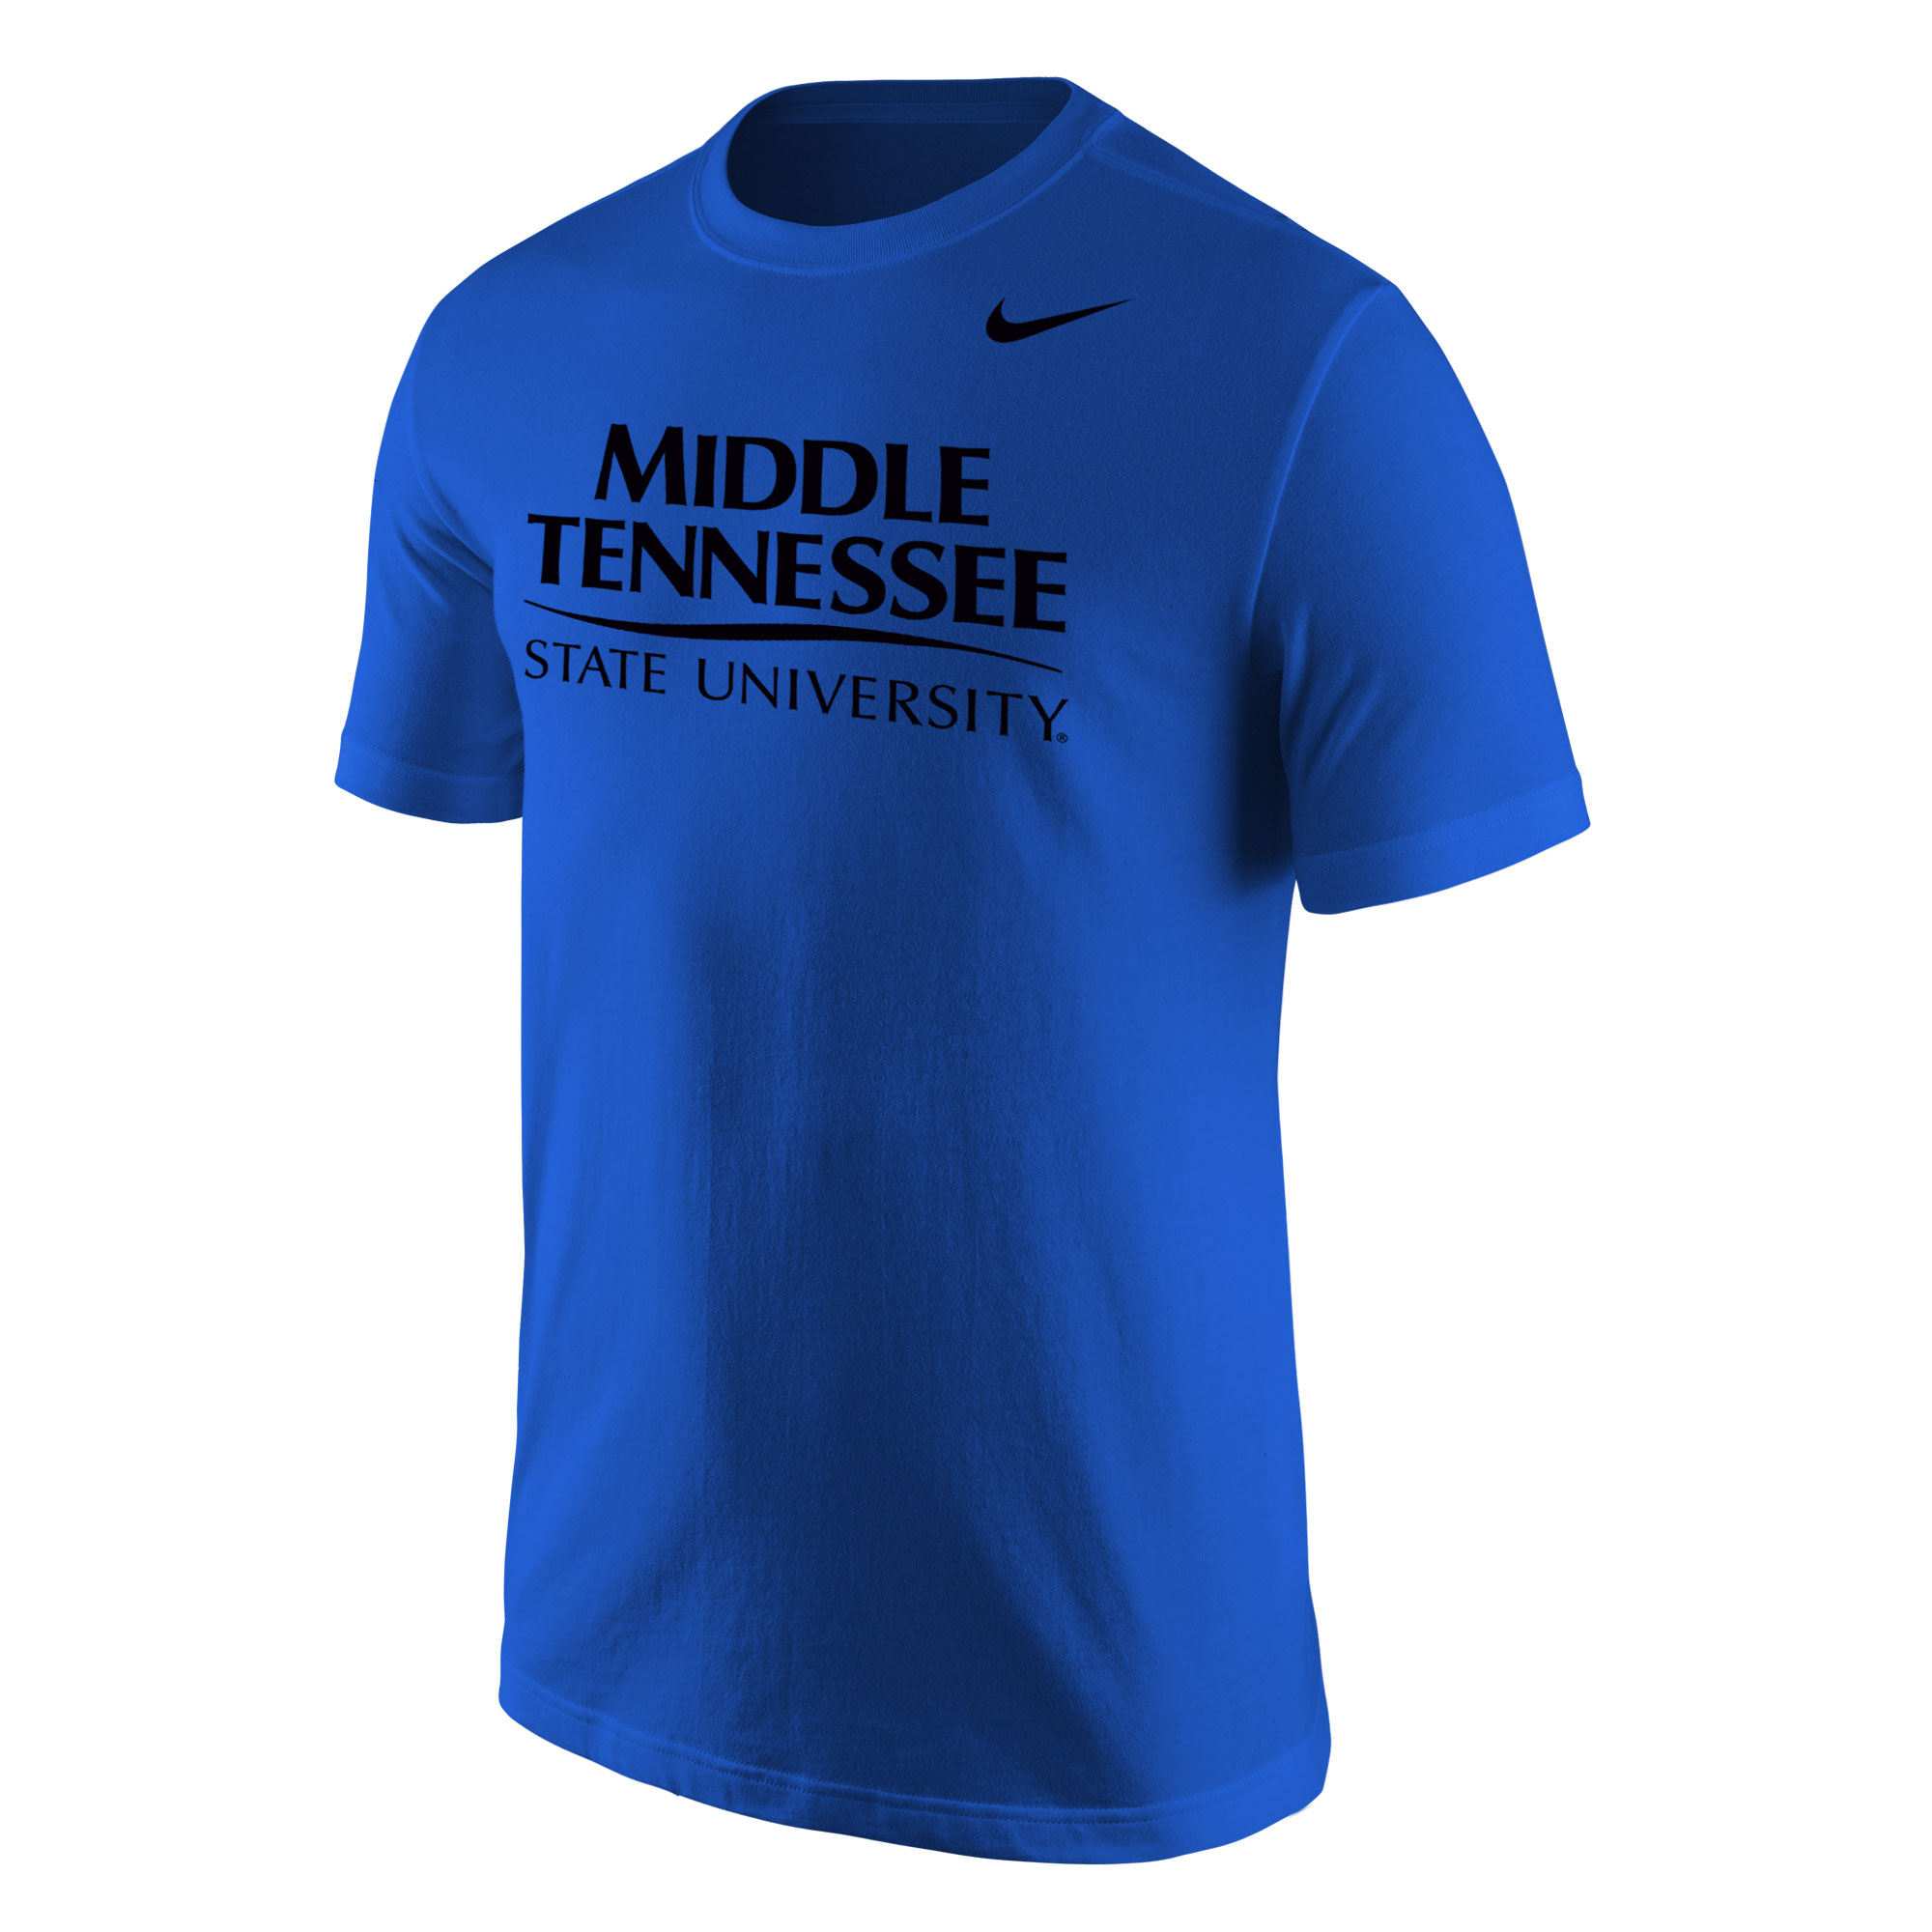 Middle Tennessee State University School Logo Nike® Core Tshirt